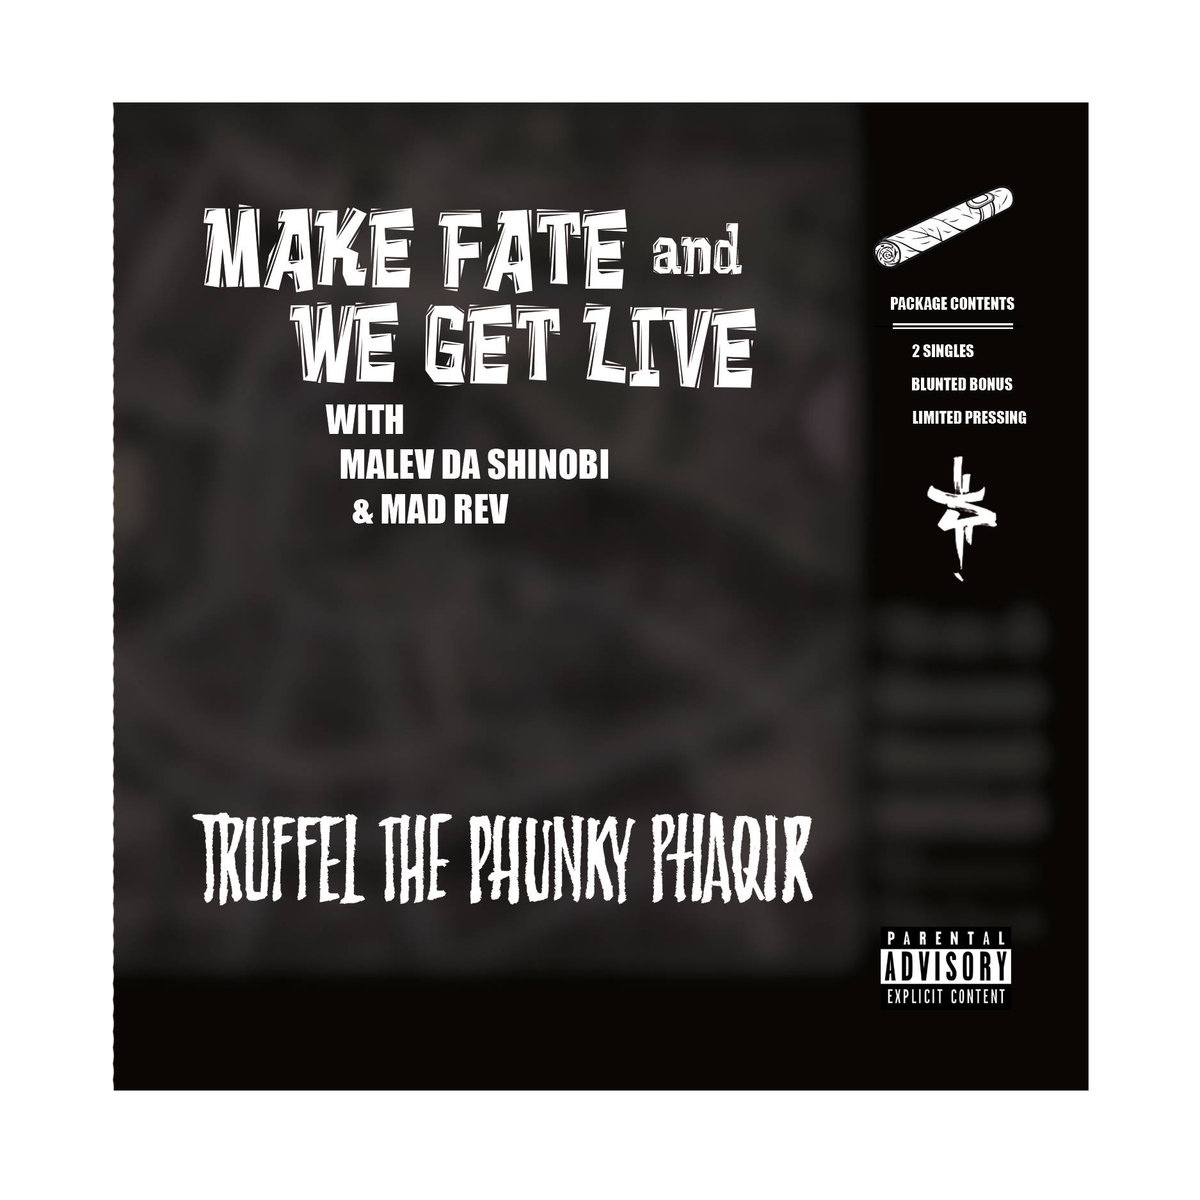 Truffel_the_phunky_phaqir_presenta_make_fate_b__w_we_get_live_12__